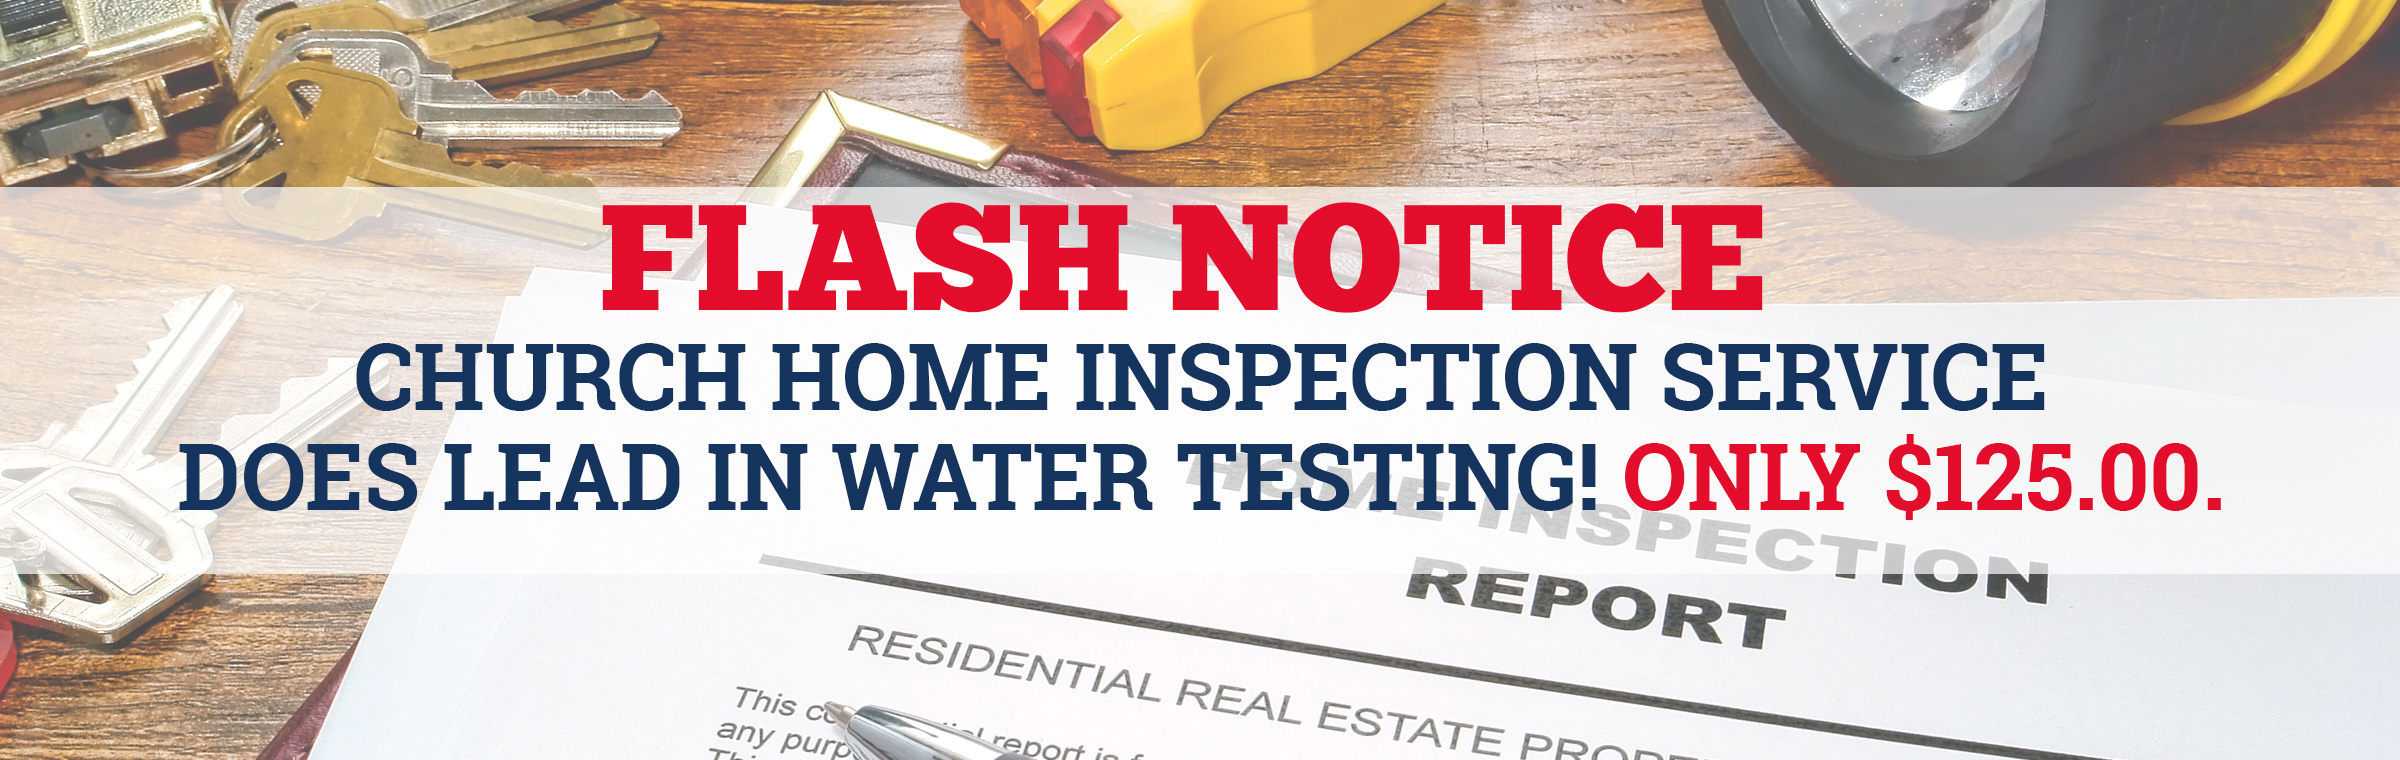 Southeaster Wisconsin home inspection